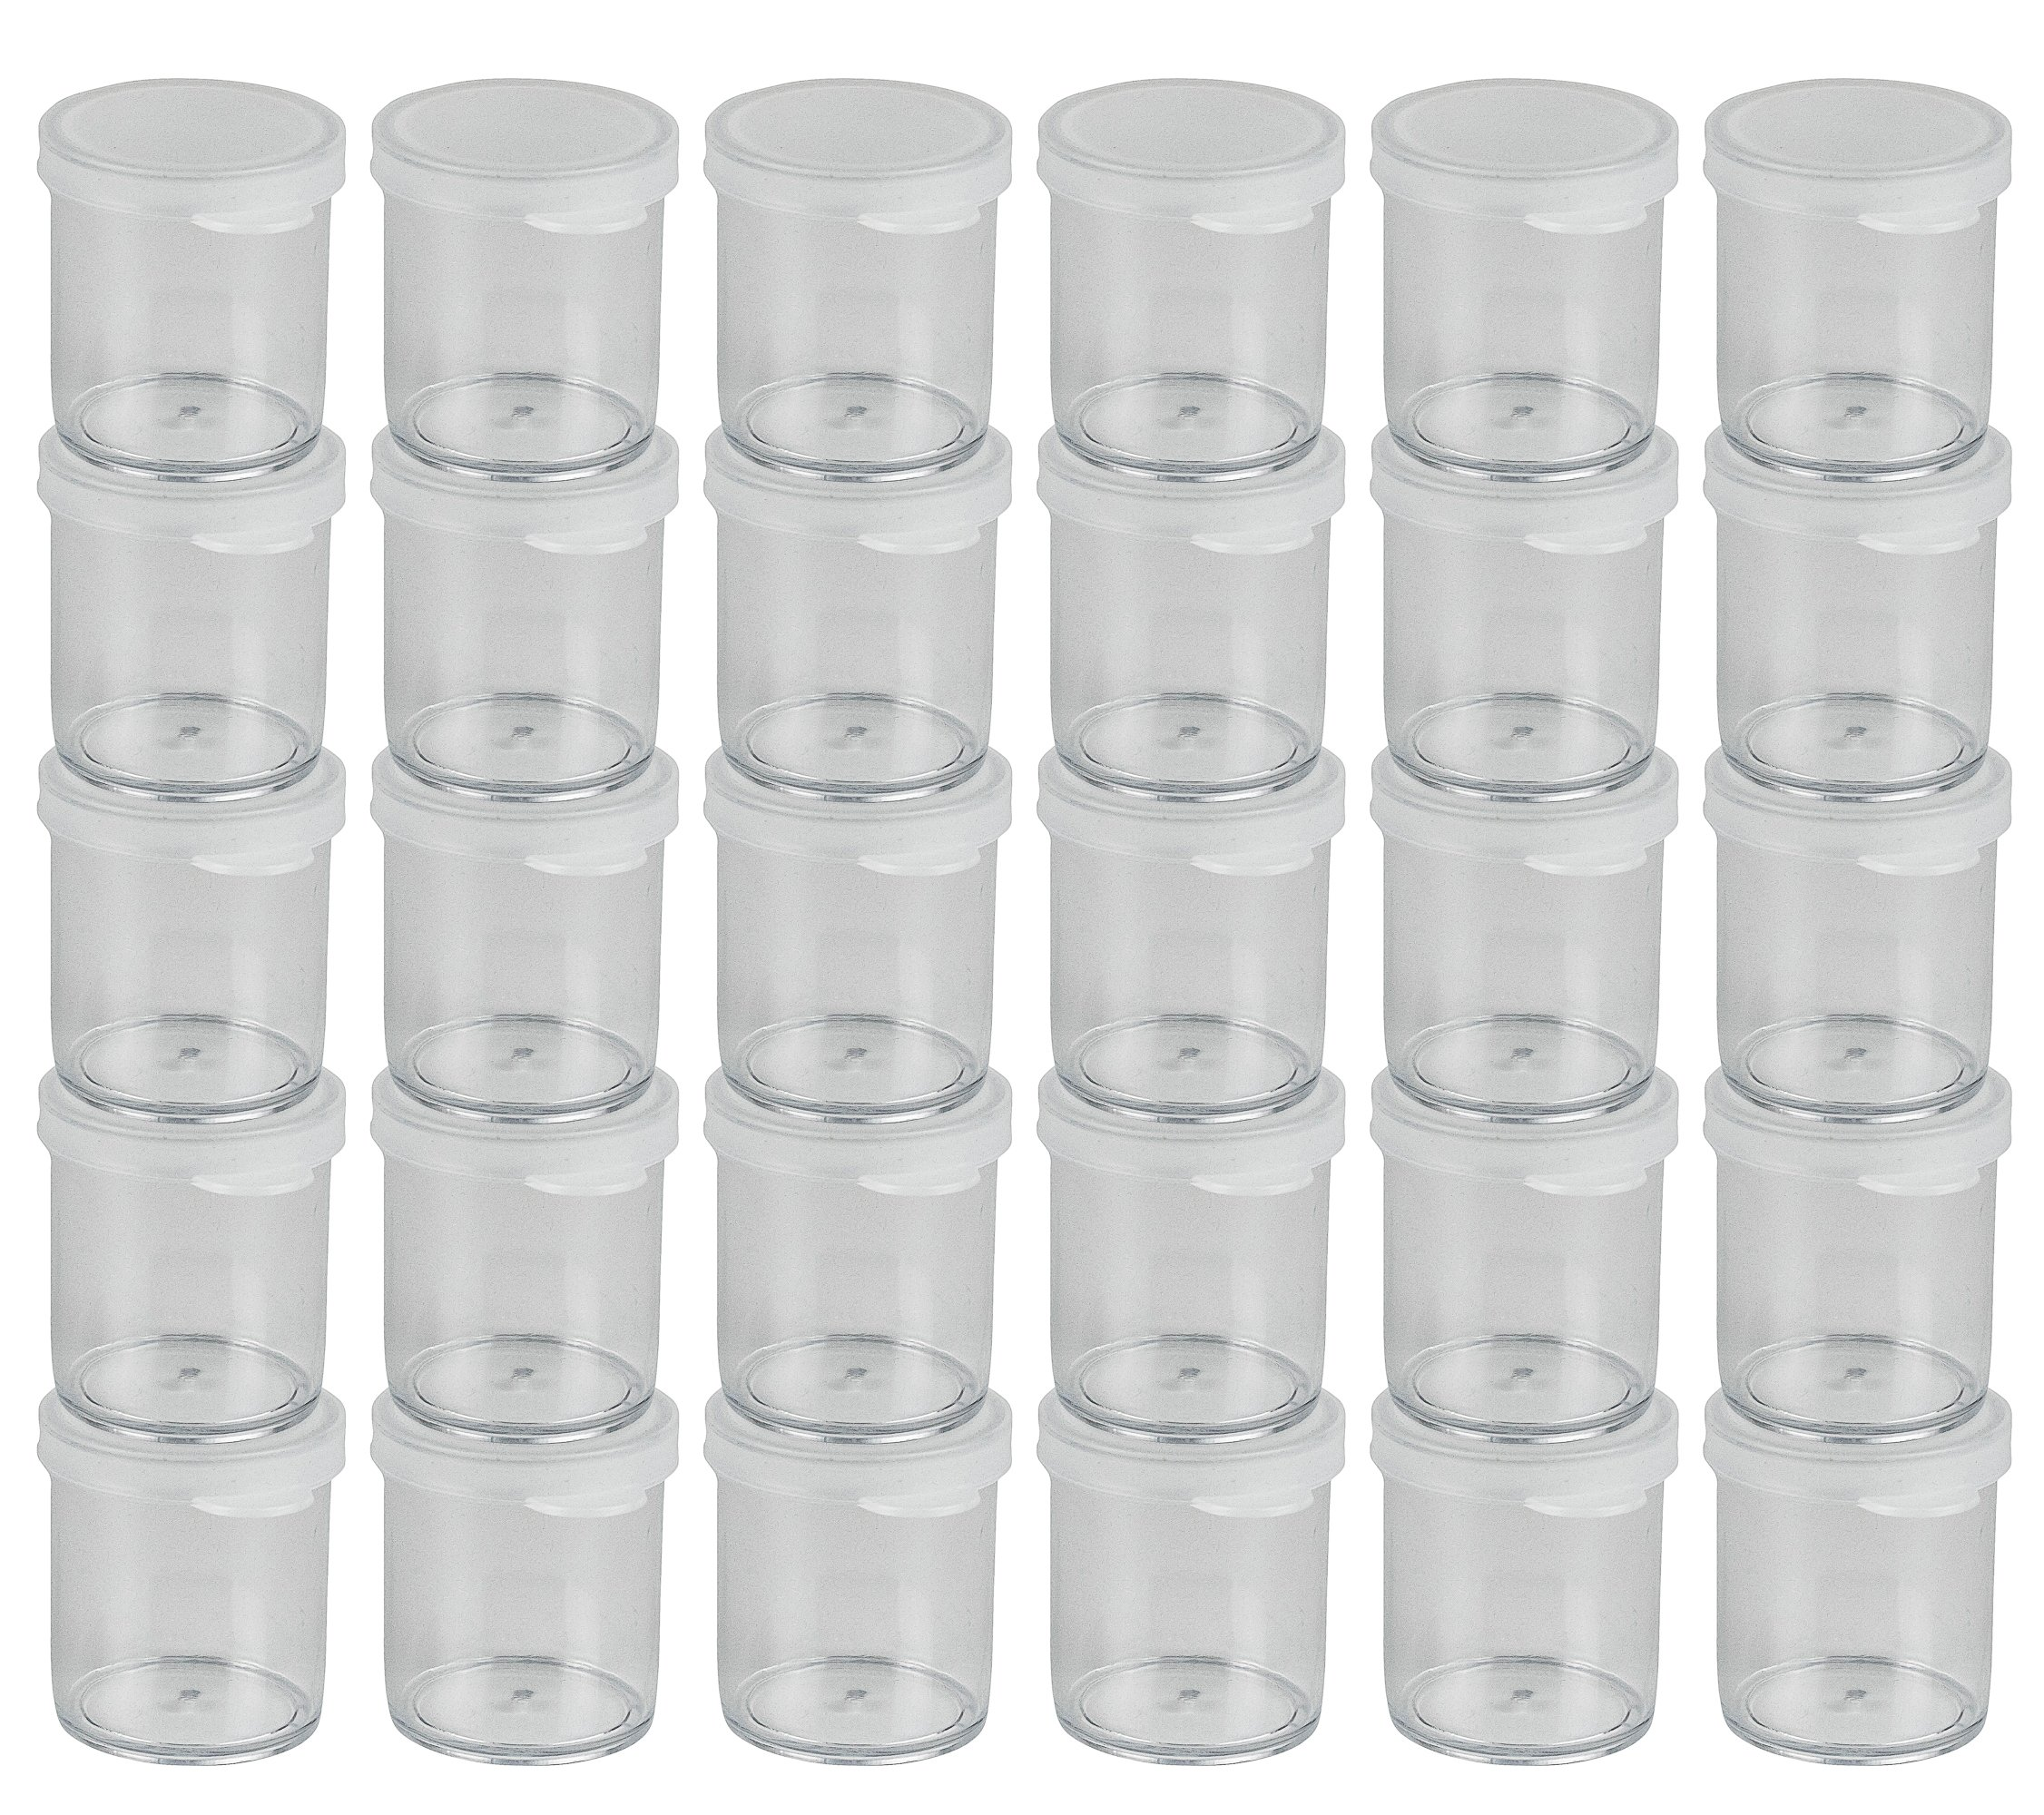 DecorRack 30 Plastic Mini Containers with Lids 1oz Craft Storage